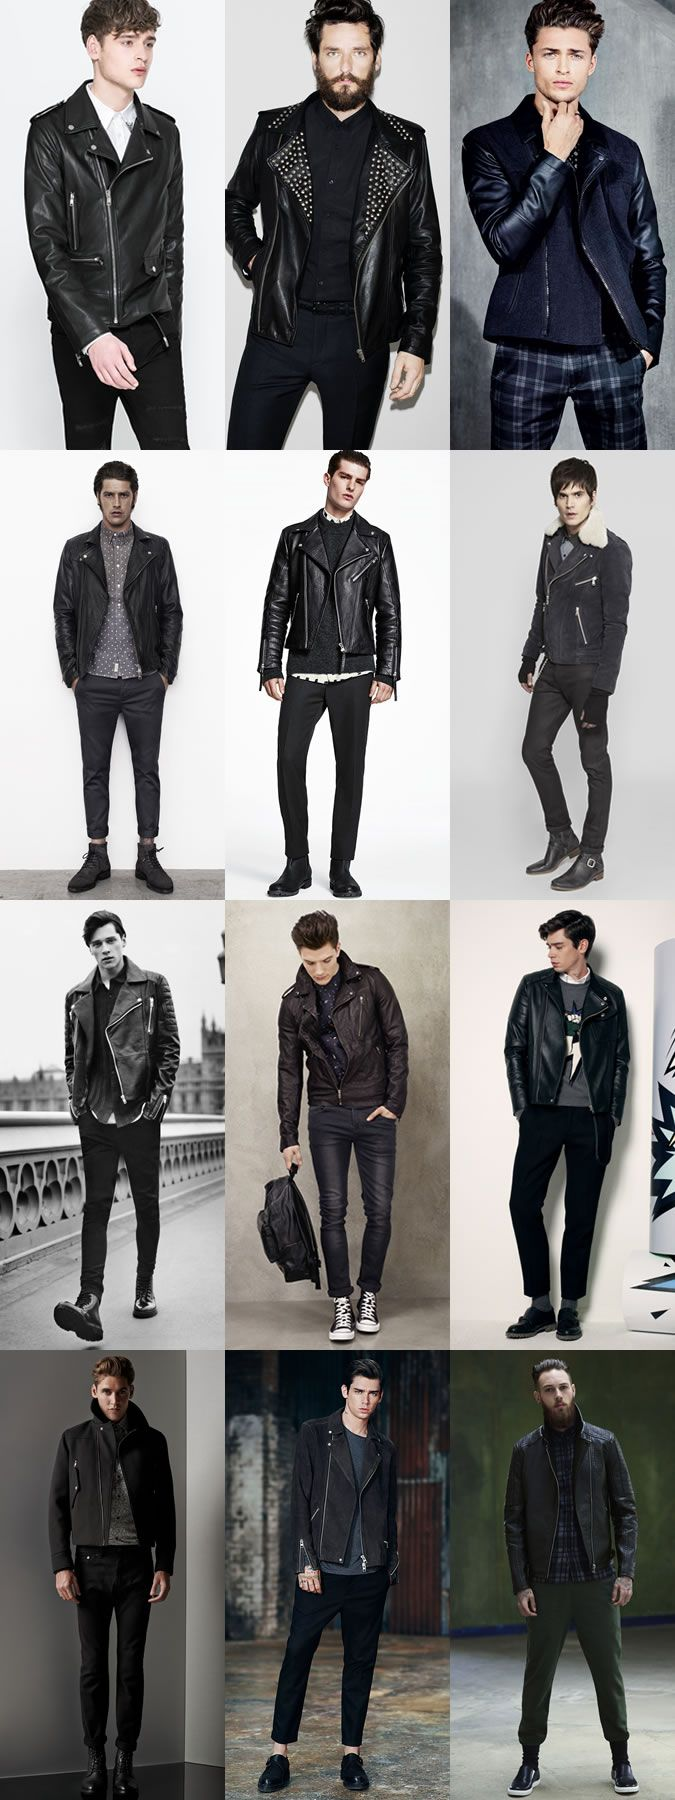 Purchase Leather Jacket Fashionbeans Up To 78 Off